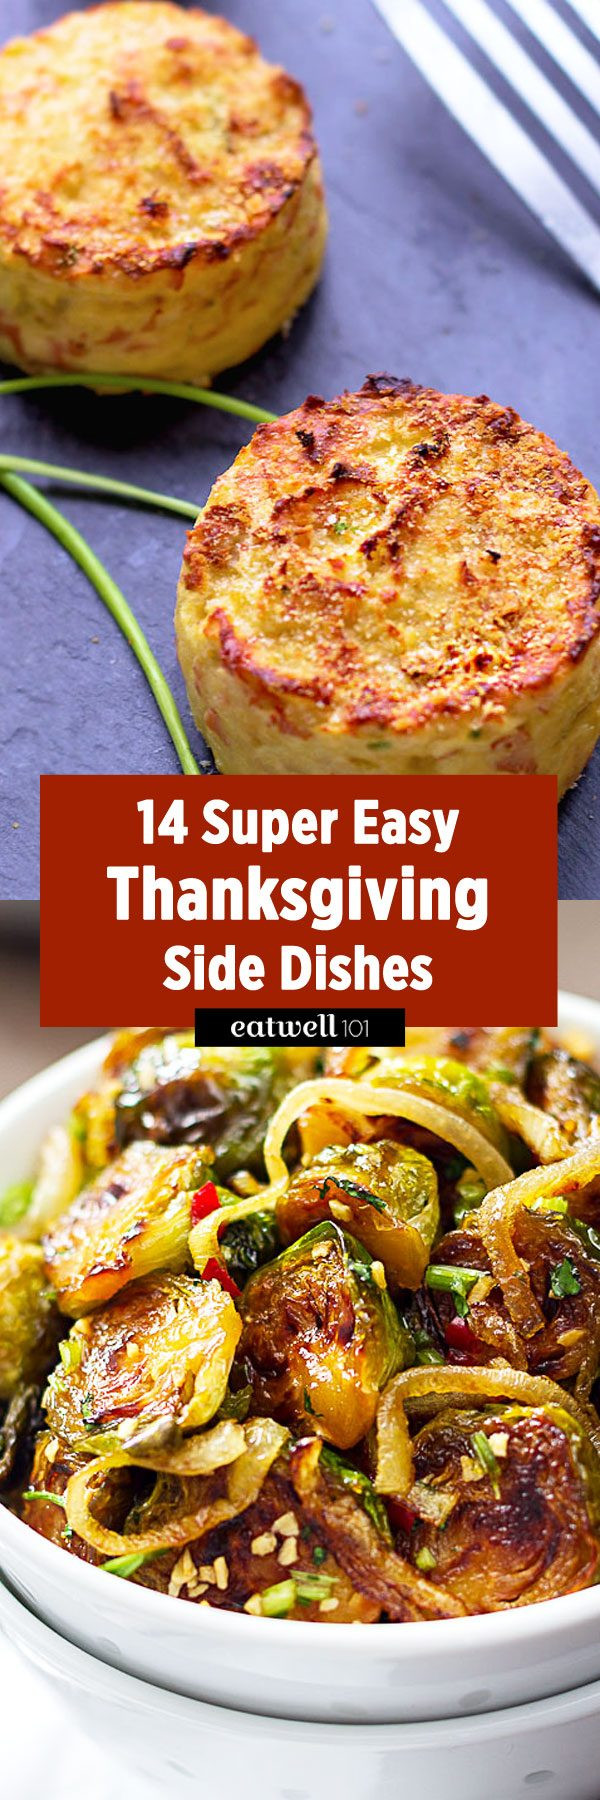 Easy Side Dishes For Thanksgiving Meal  Up Your Thanksgiving With These Super Easy Side Dishes